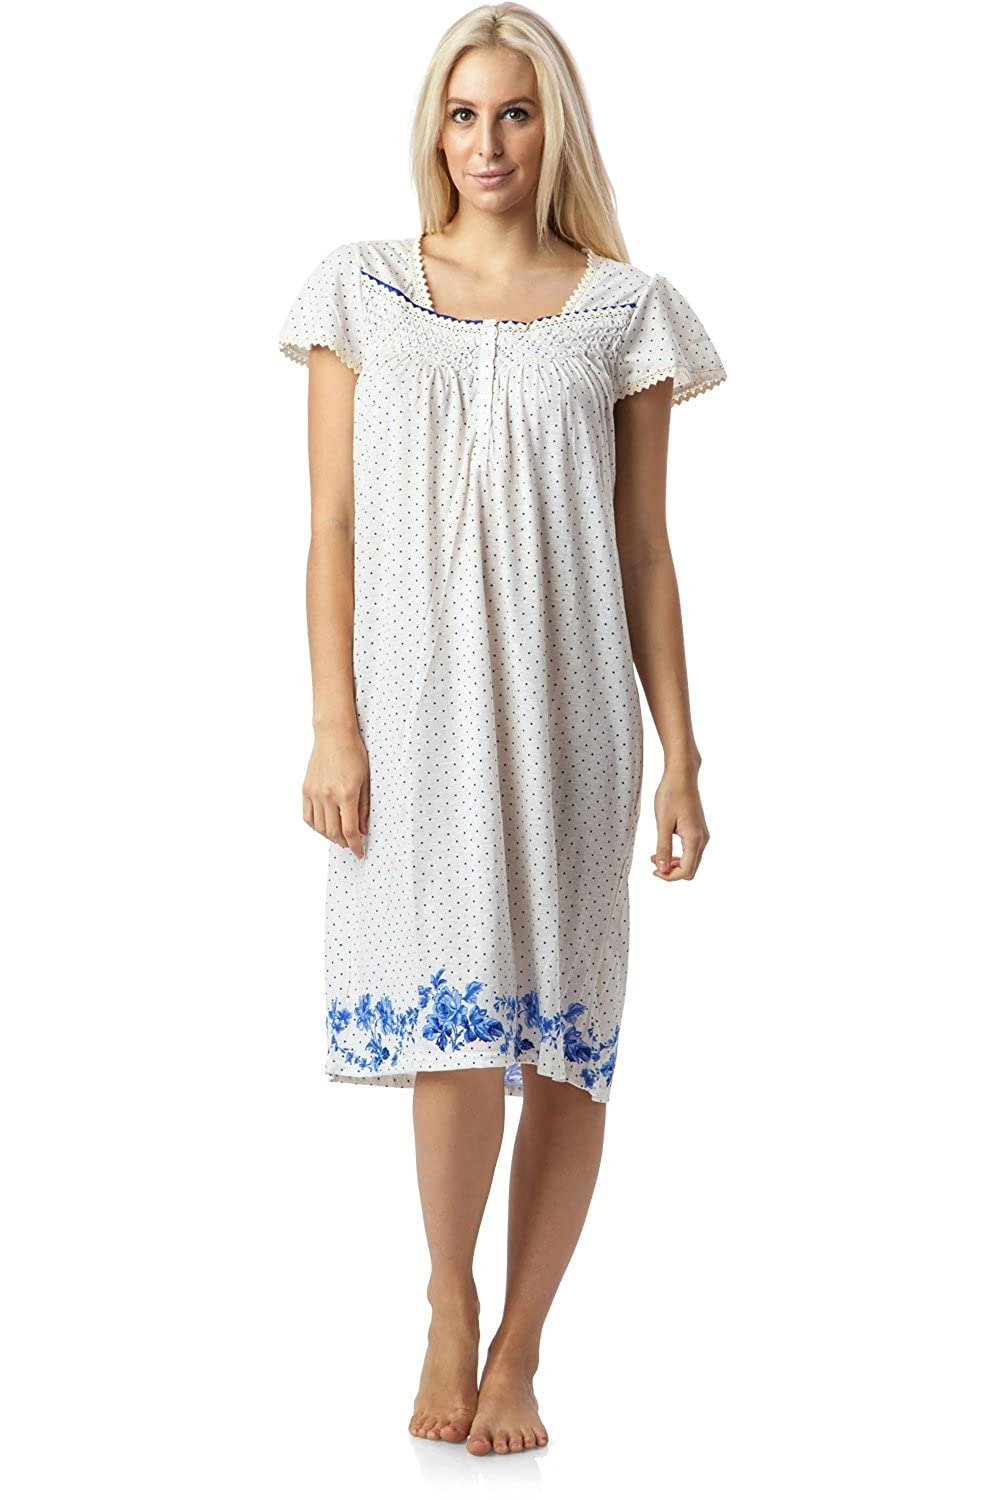 Casual Nights Women's Square Neck Cap Sleeves Floral Lace Nightgown Cap Sleeves Nightgown